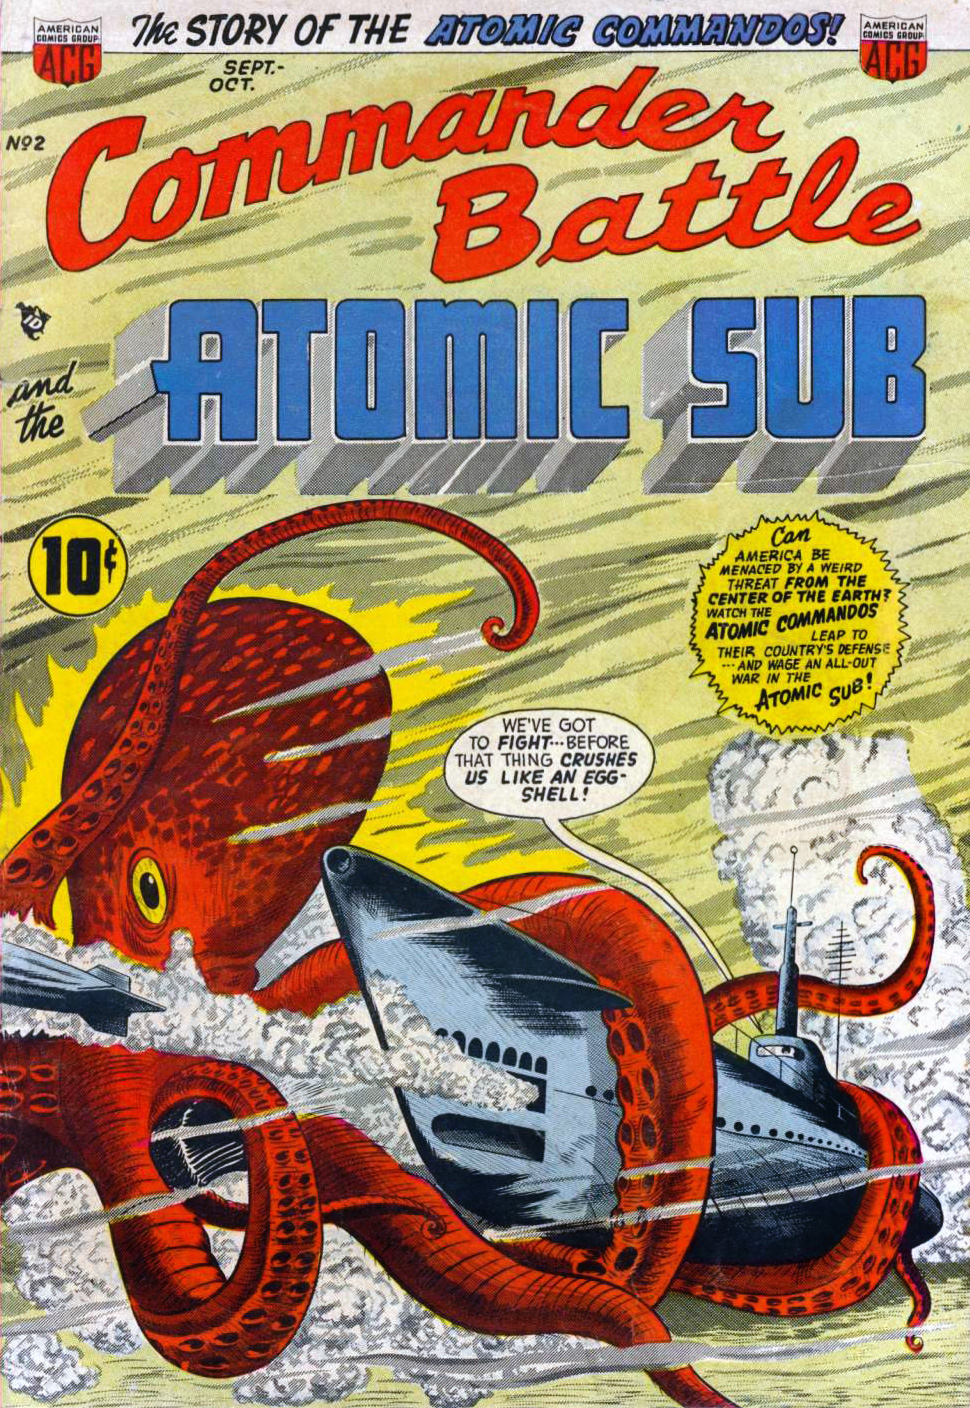 Commander-Battle-and-the-Atomic-Sub-#2